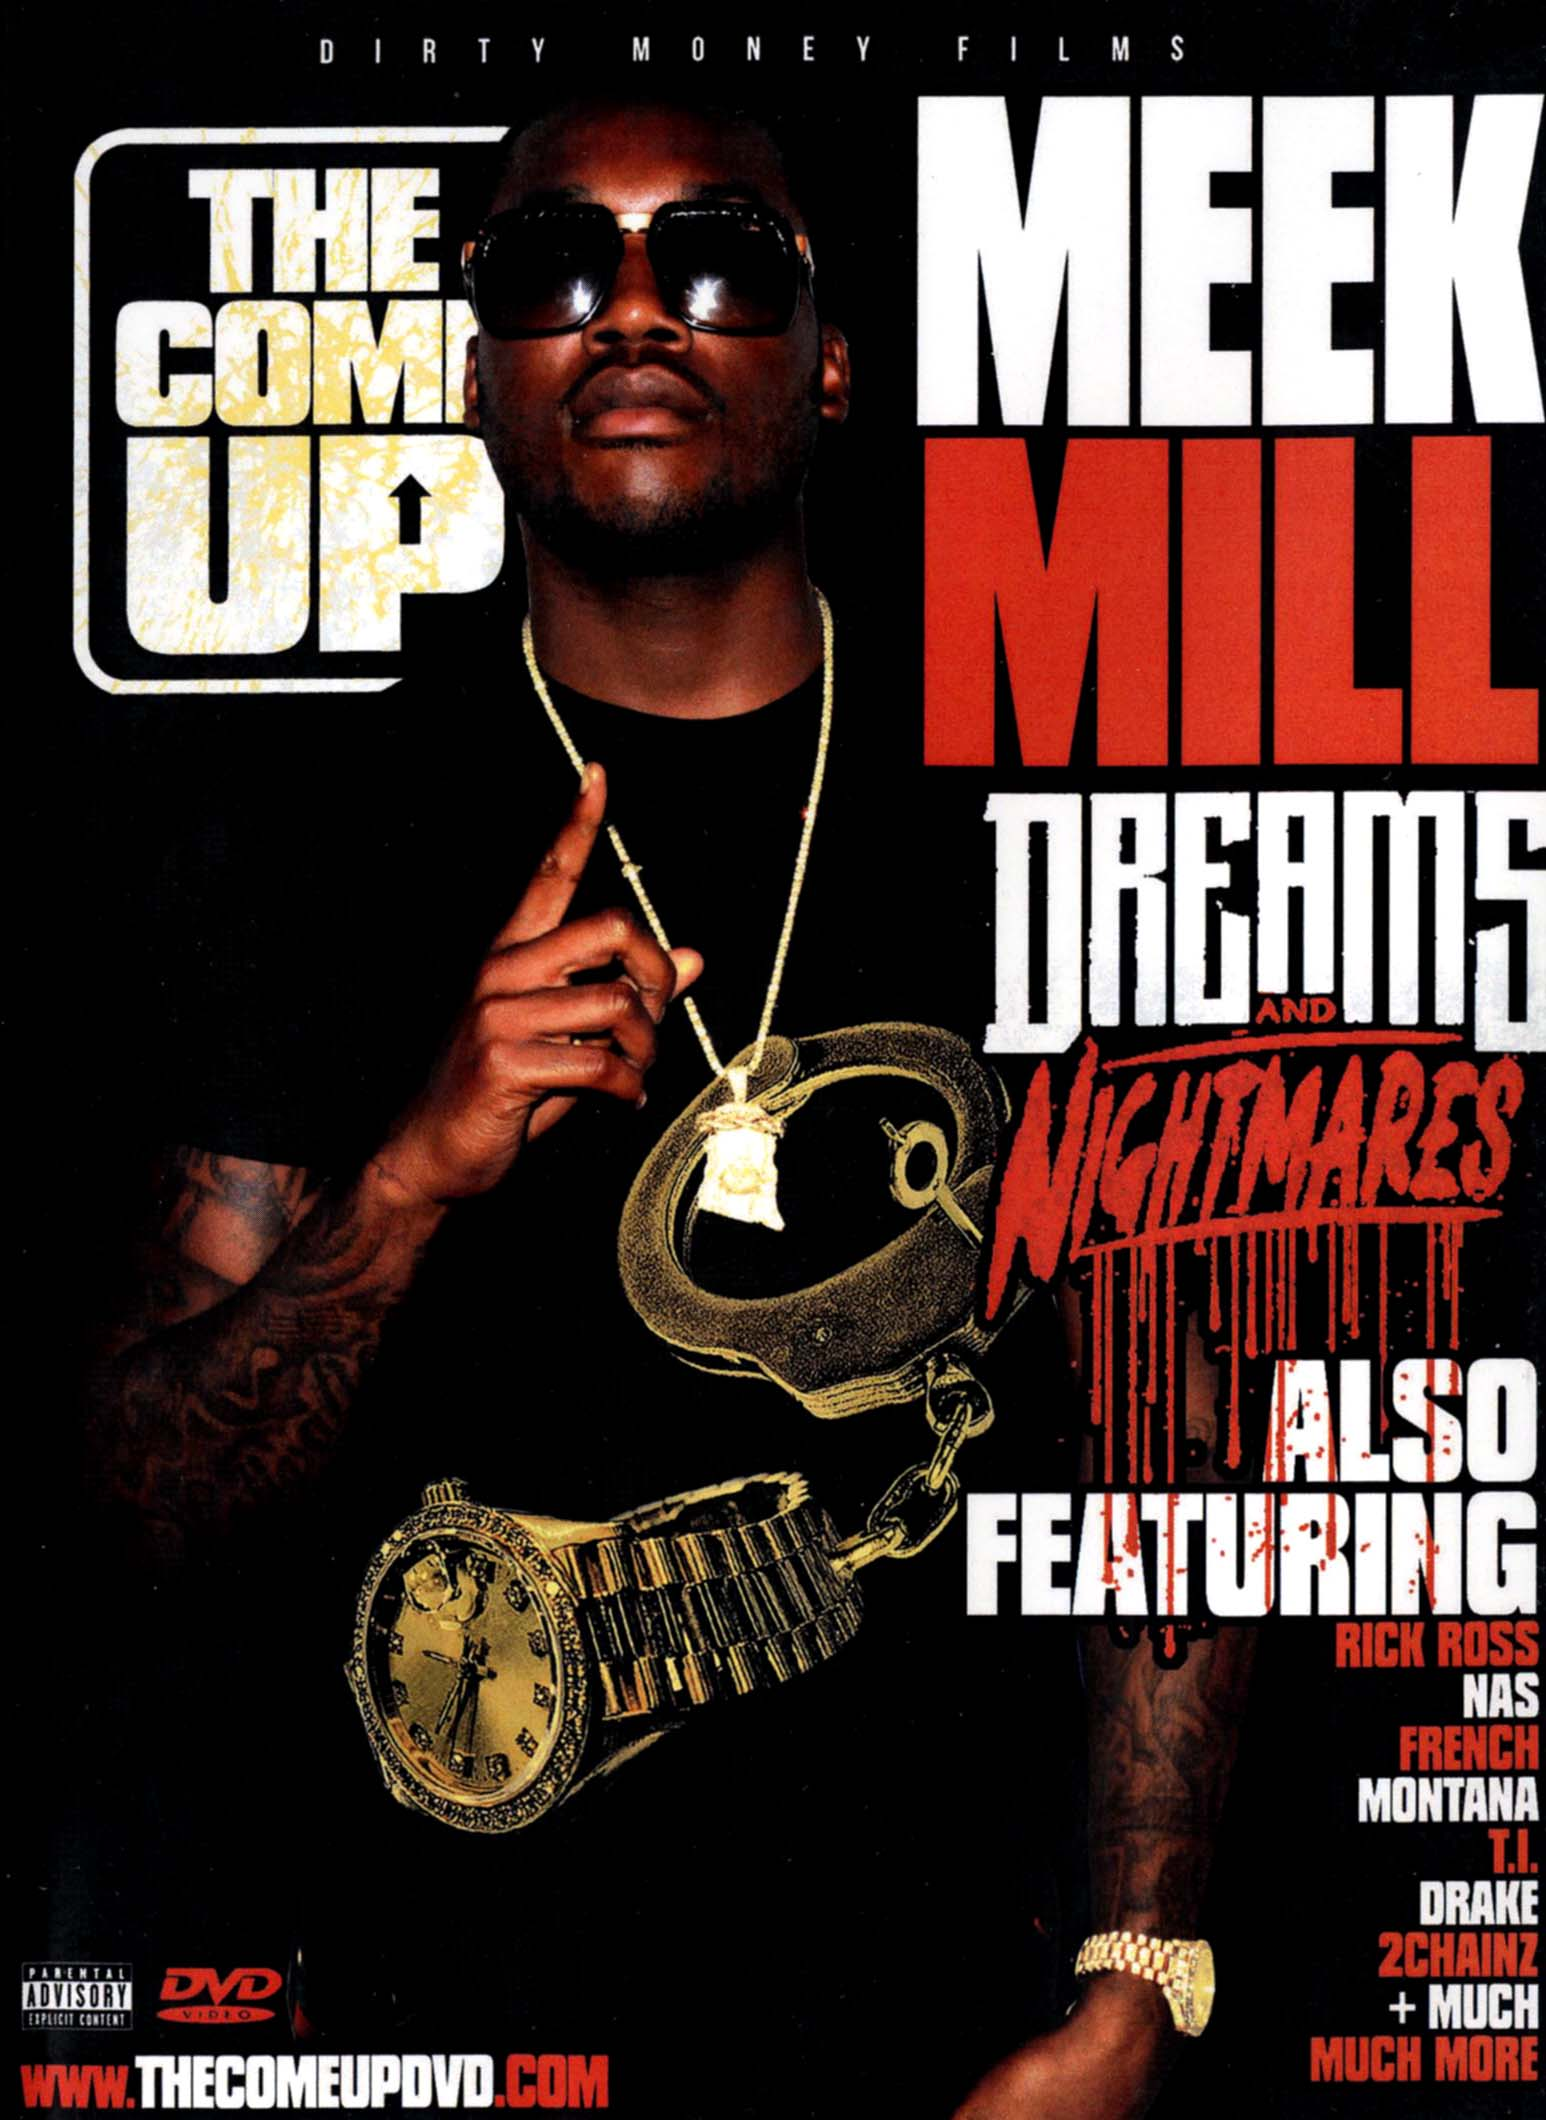 The Come Up: Meek Mill - Dreams and Nightmares